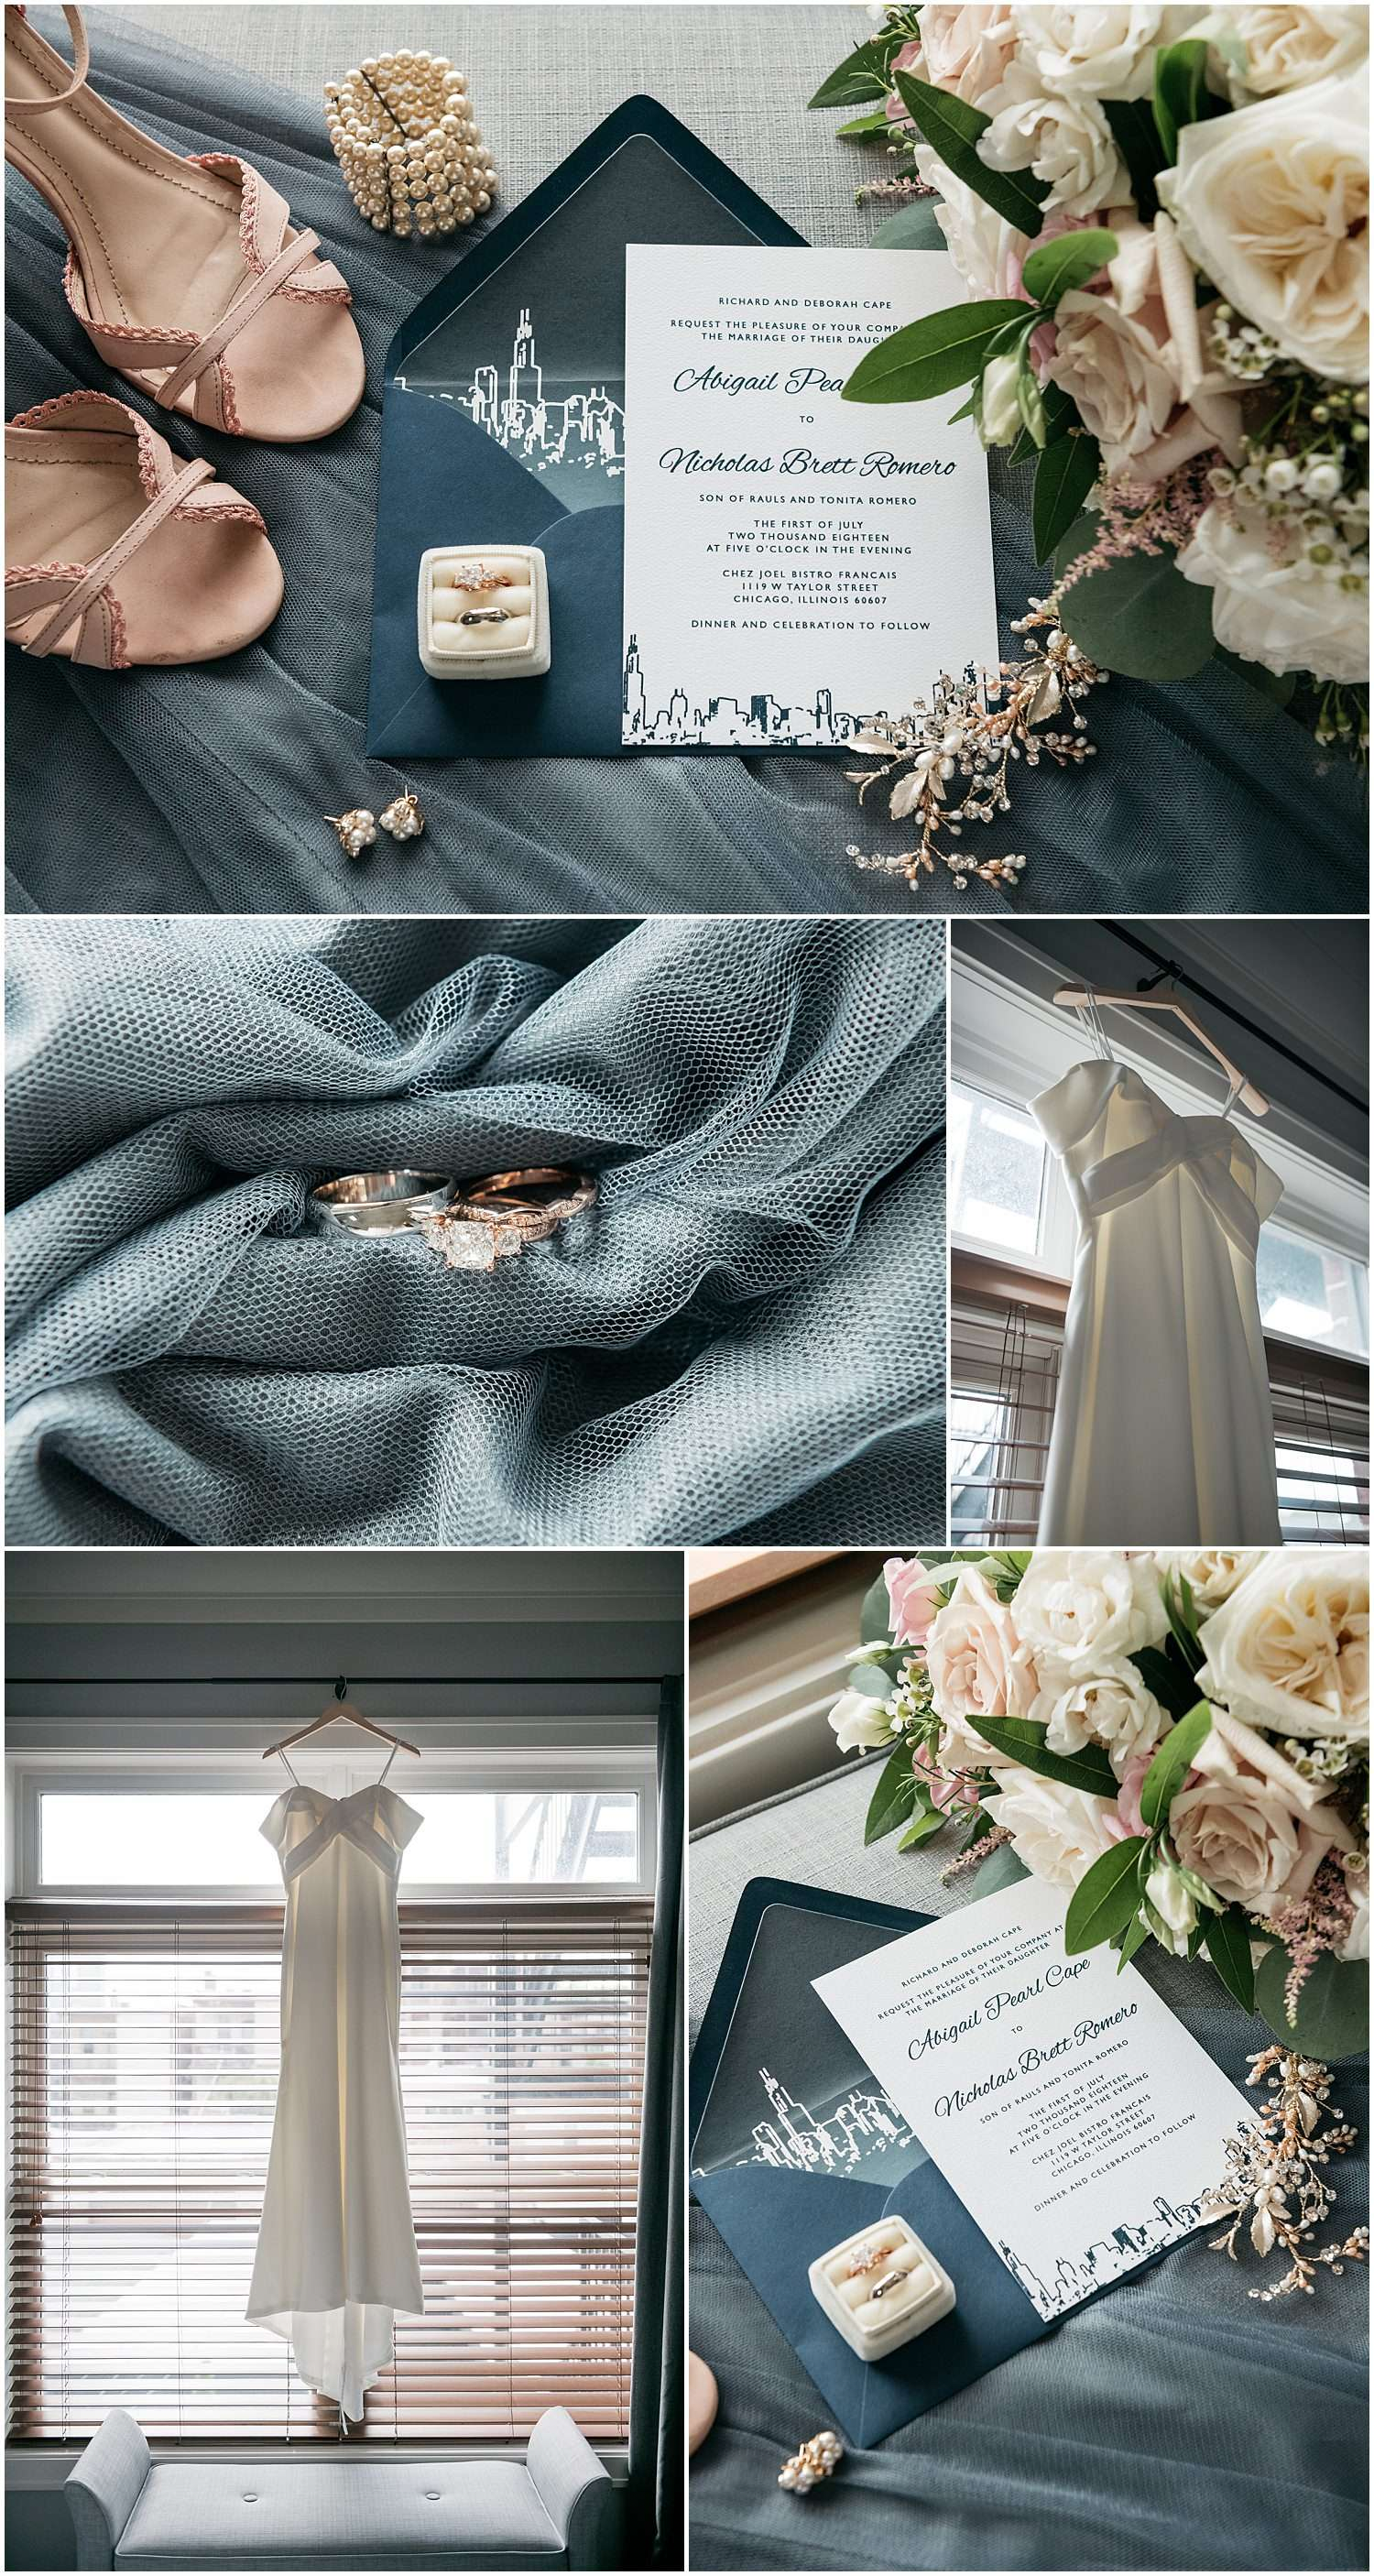 wedding, photographer, photography, autumn, best first look reactions, bhldn, chez joel, chez joel bistro, chez joel bistro francais, little italy, chicago, illinois, courtyard, elope, intimate wedding, small wedding, fall, first look, flowers for dreams, groom reaction, how to have a small wedding, intimate, intimate wedding, iron and honey, minimal, minimalist, reaction, wedding planning tips